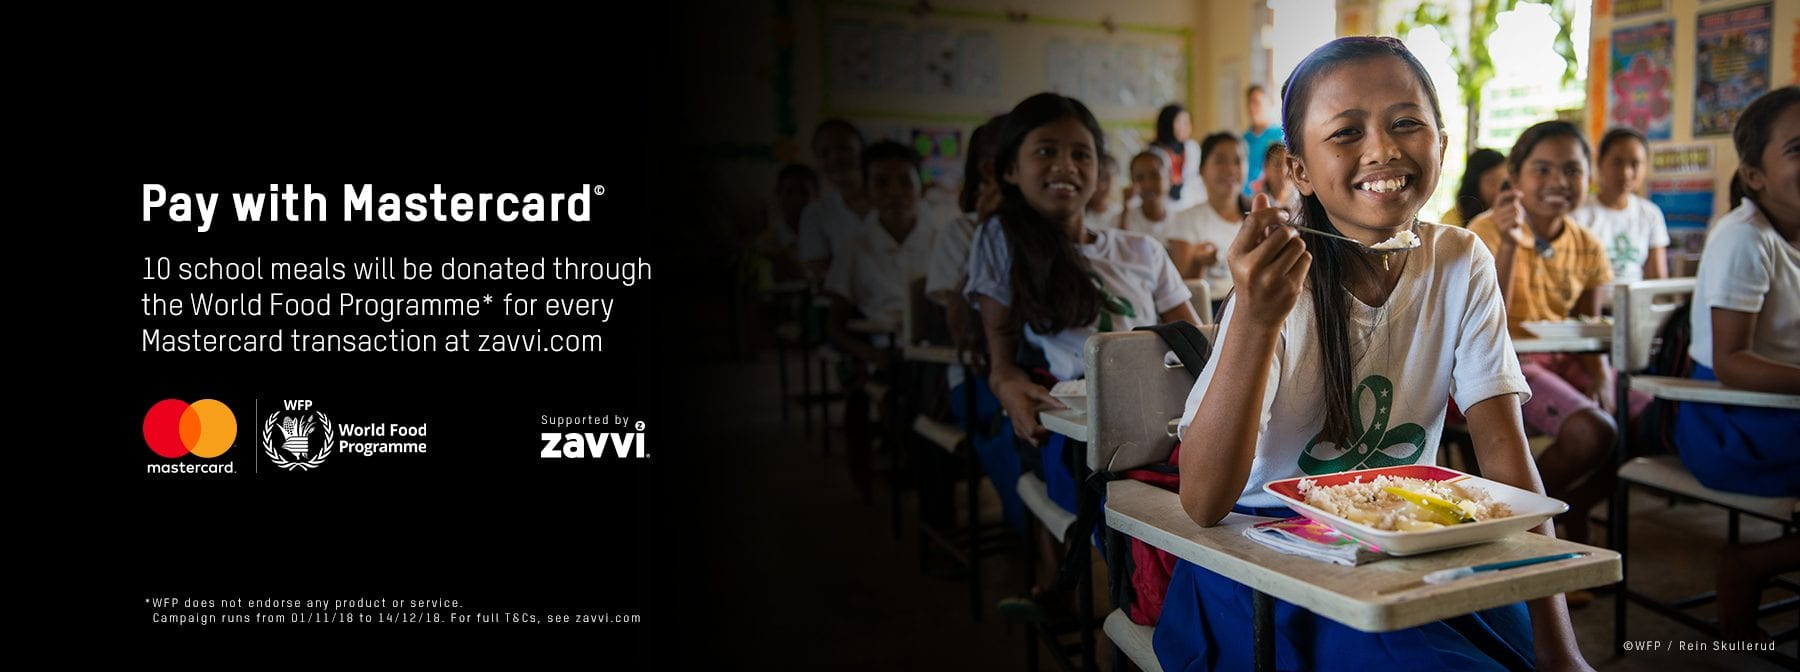 Pay with Mastercard on Zavvi and help support the World Food Programme